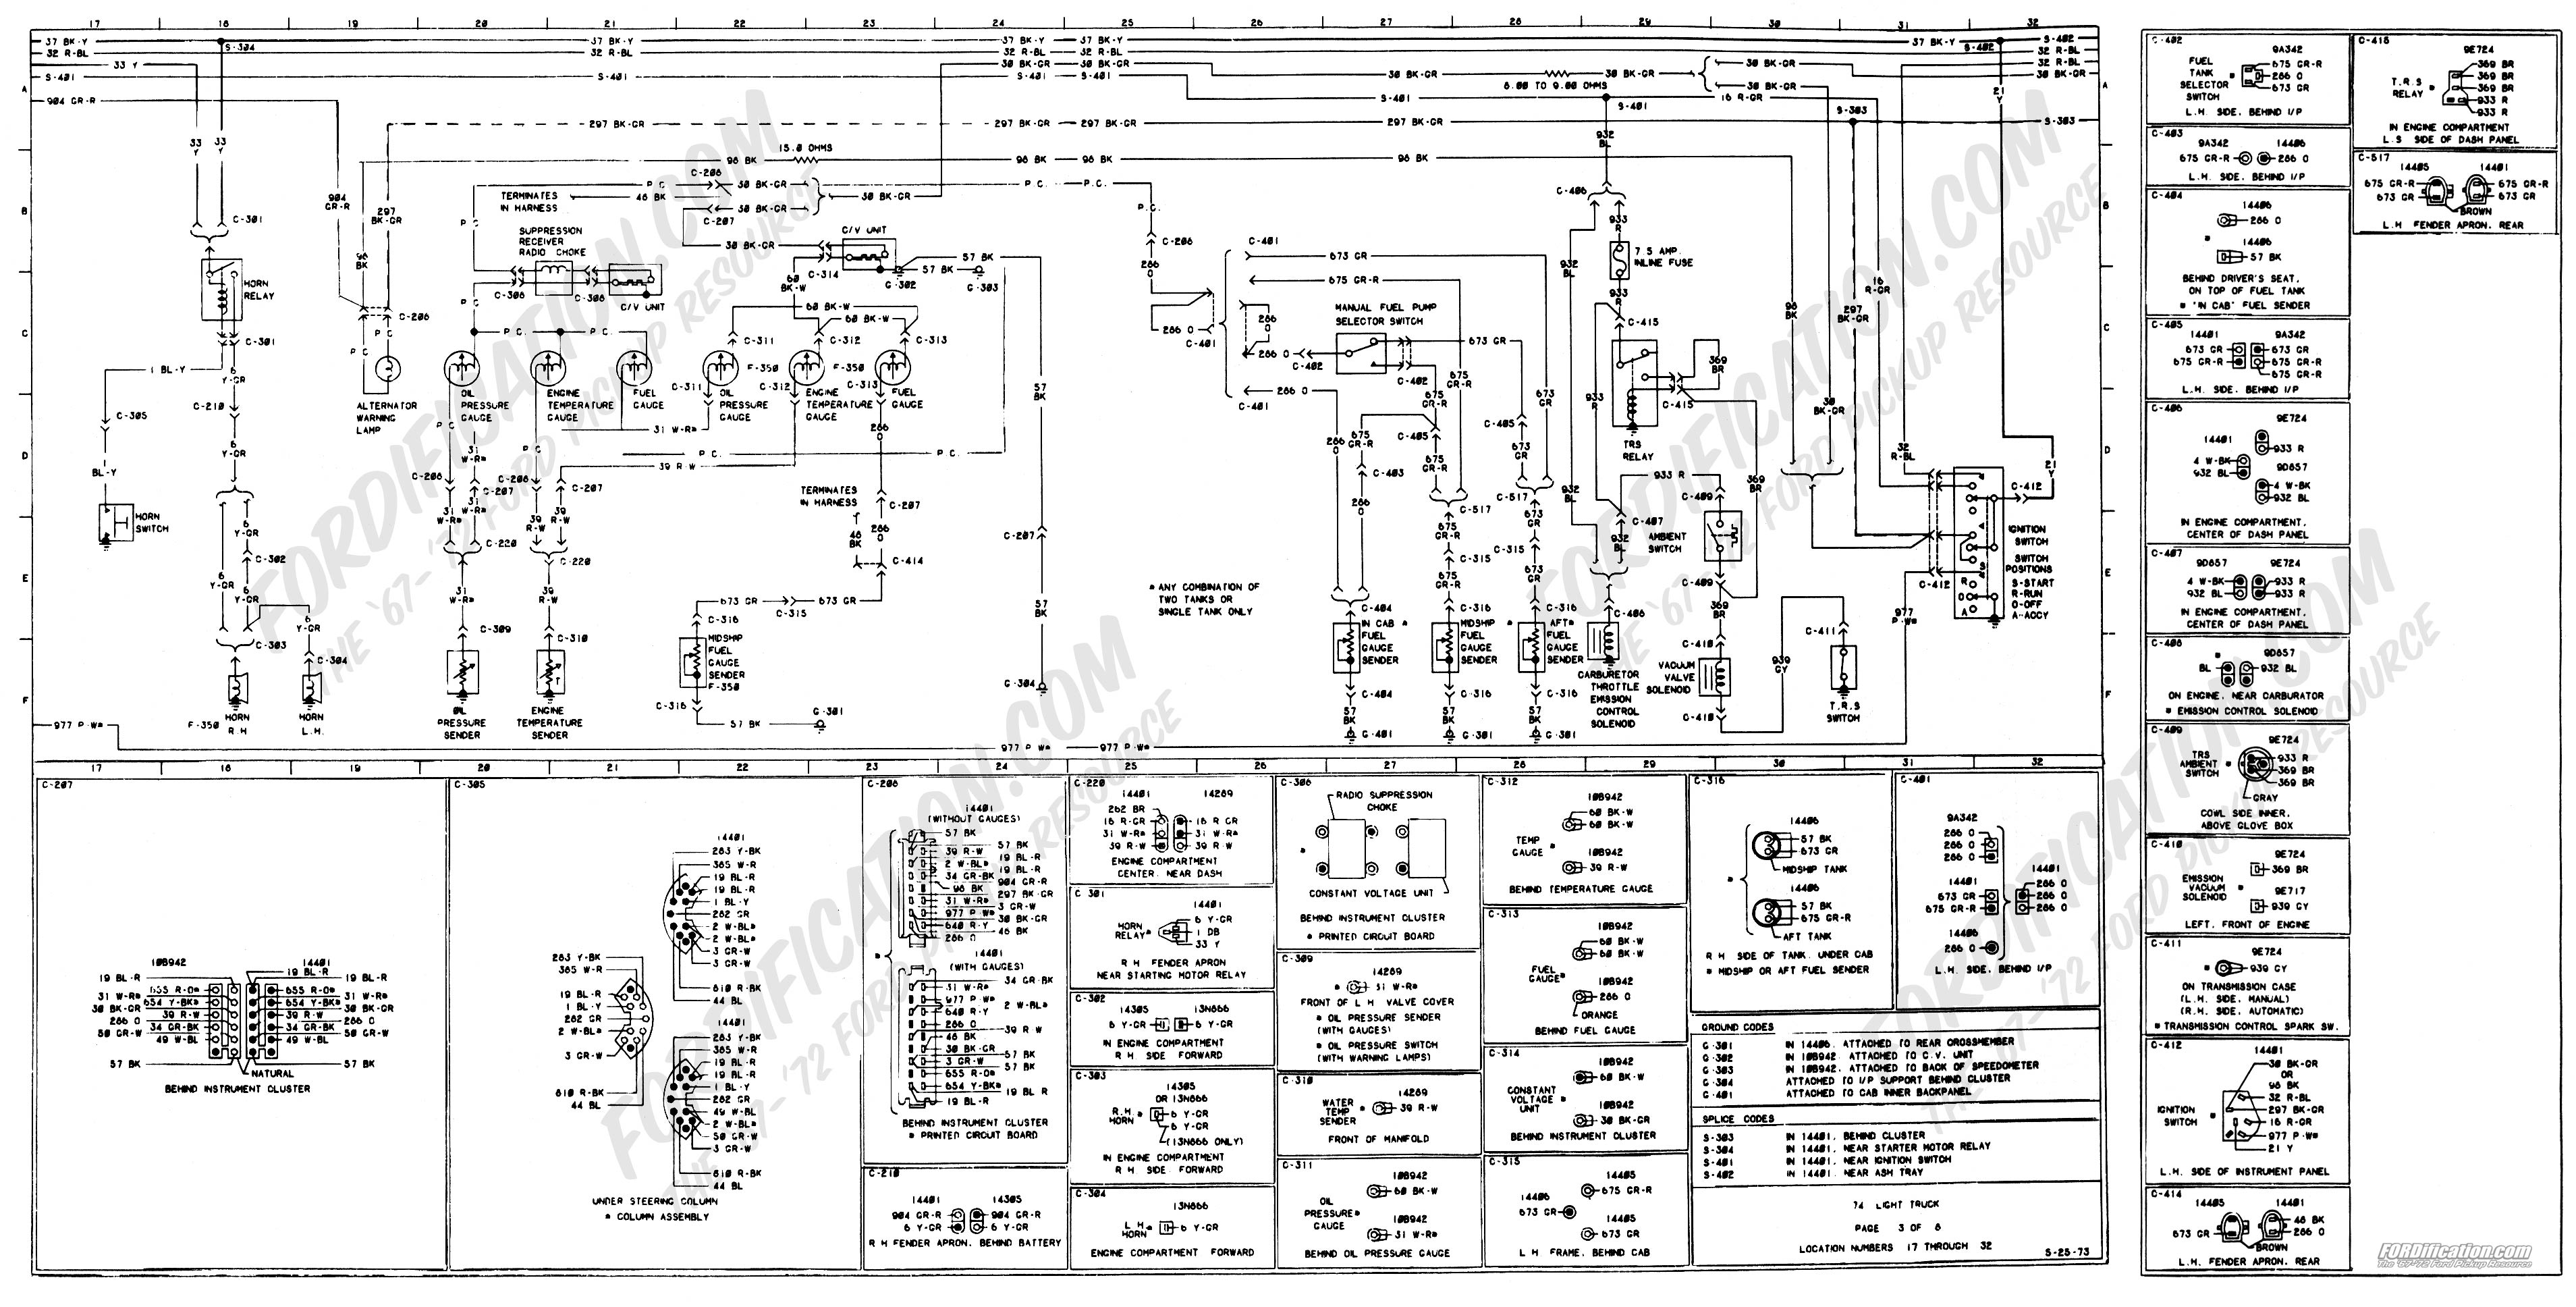 wiring_74master_3of8 1973 1979 ford truck wiring diagrams & schematics fordification net electrical wiring diagram ford courier at suagrazia.org